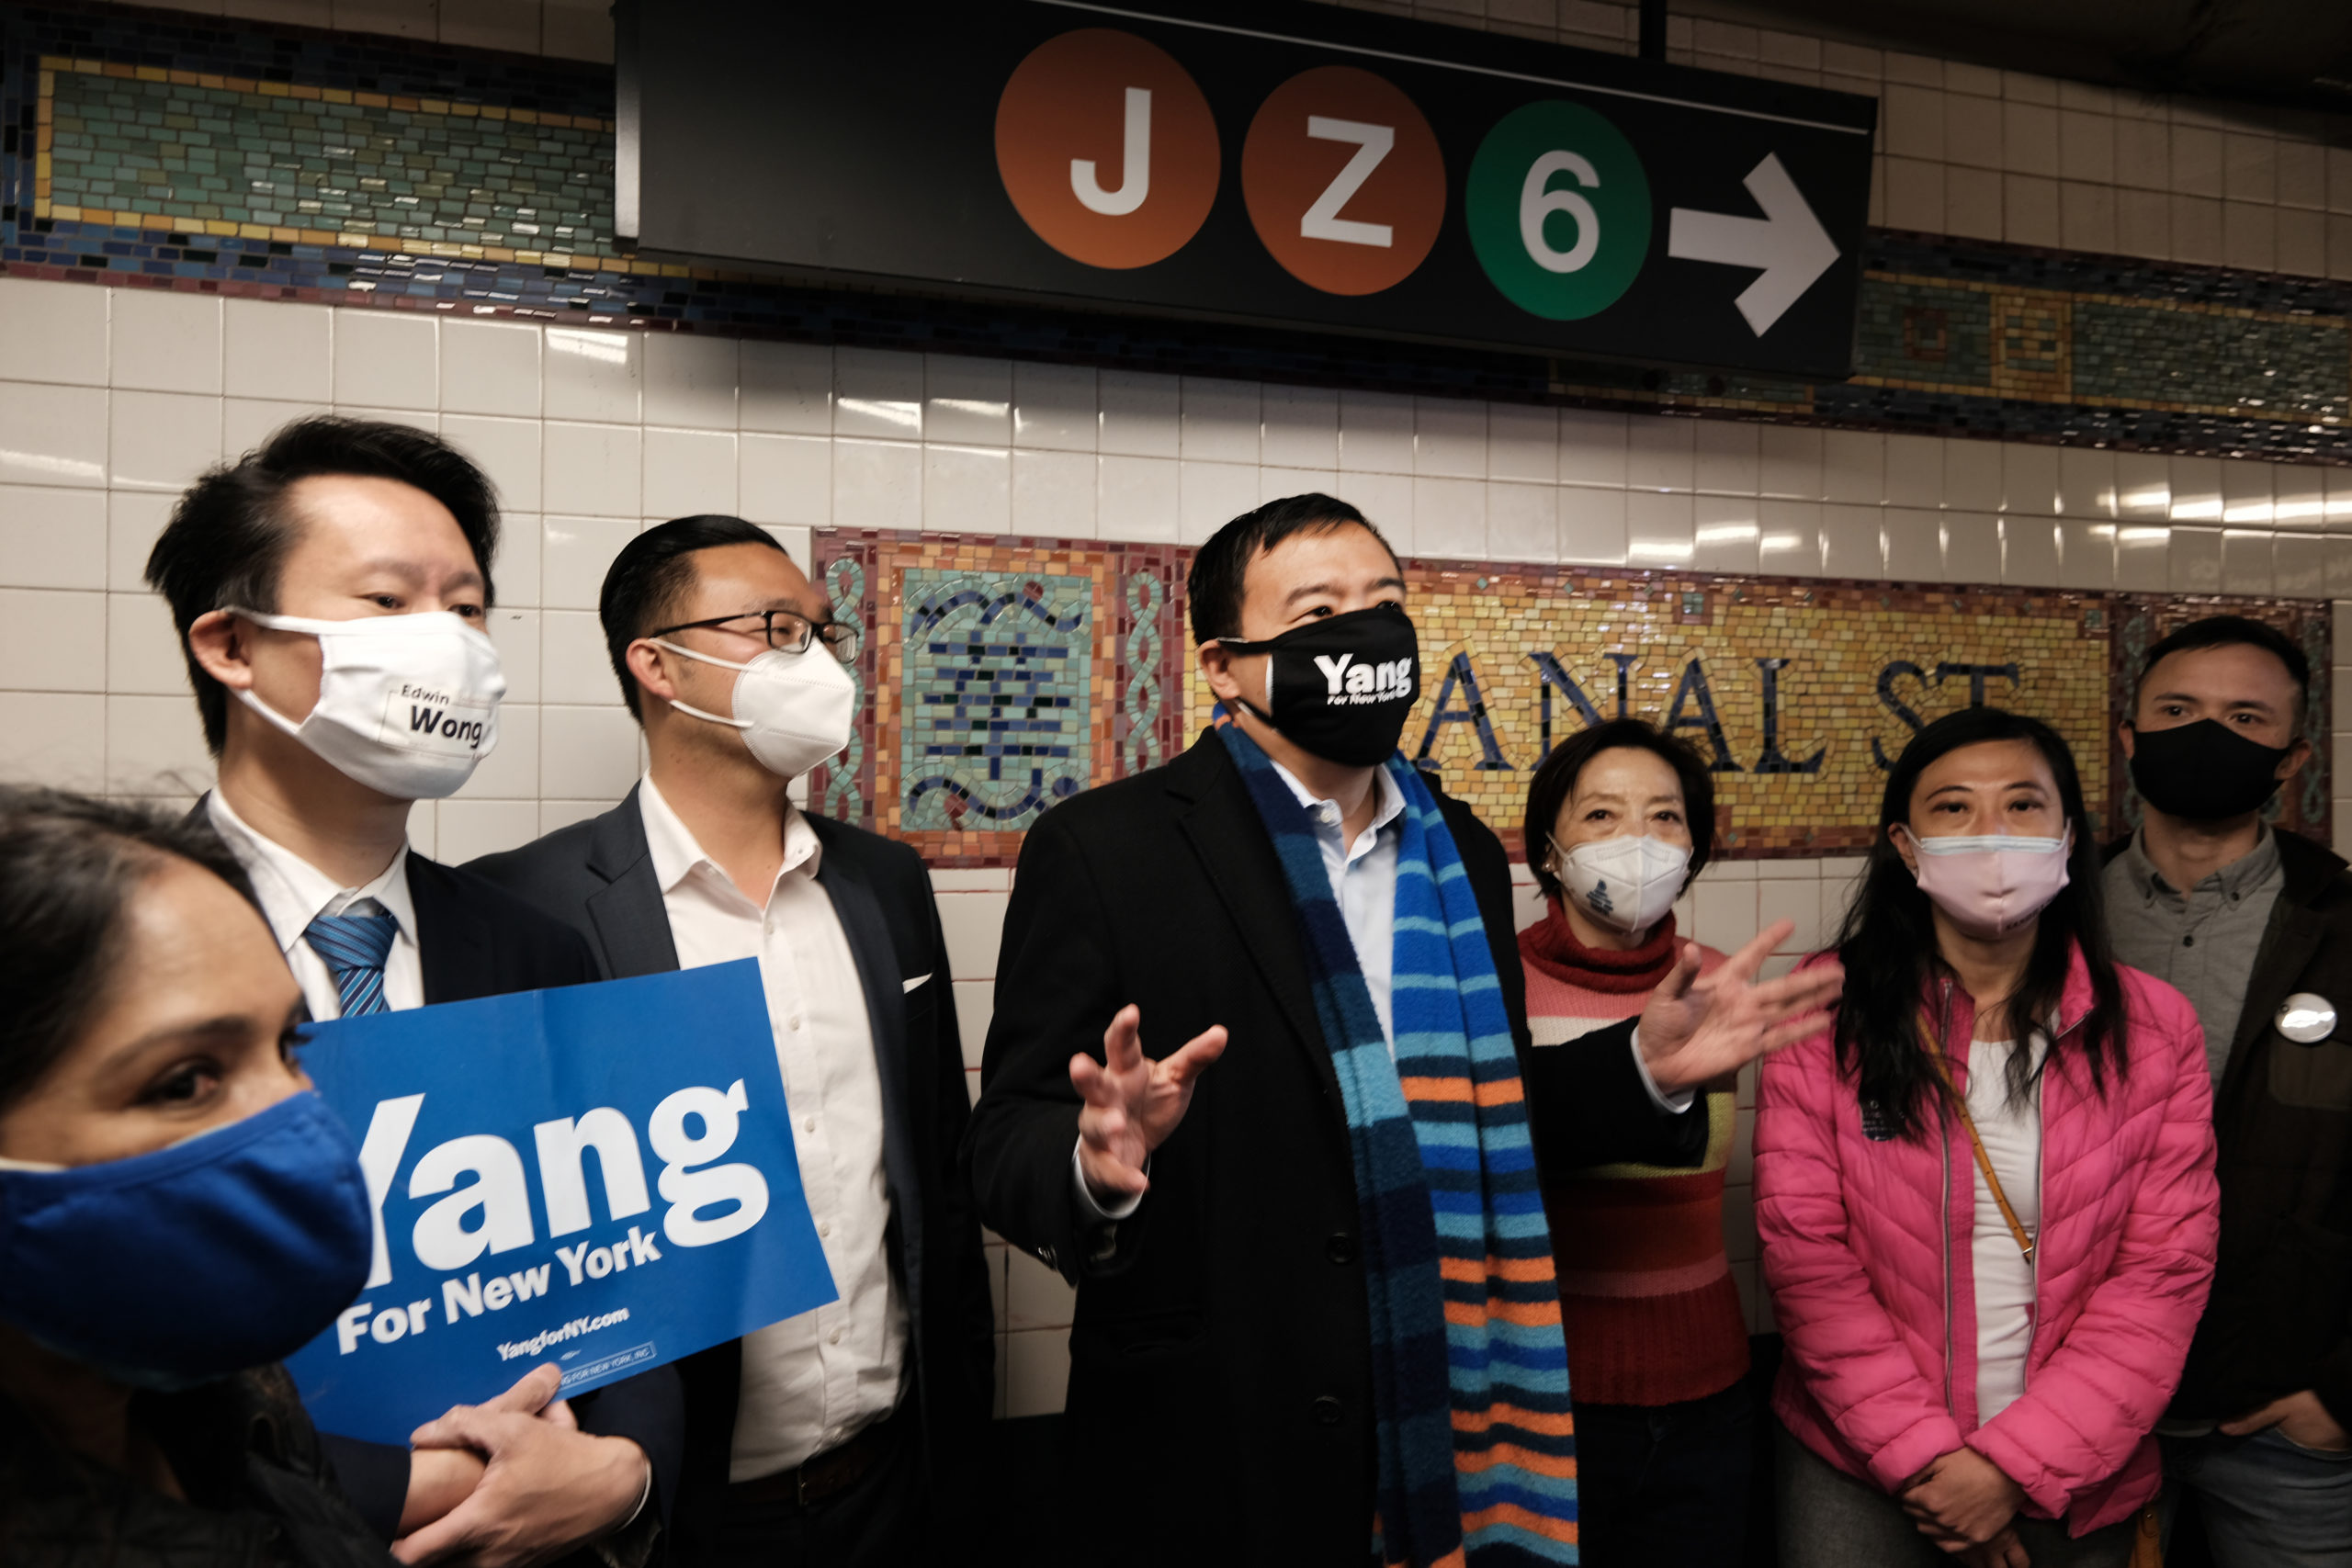 Andrew Yang speaks to members of the media along Canal Street subway station in Chinatown on April 05, 2021. (Spencer Platt/Getty Images)